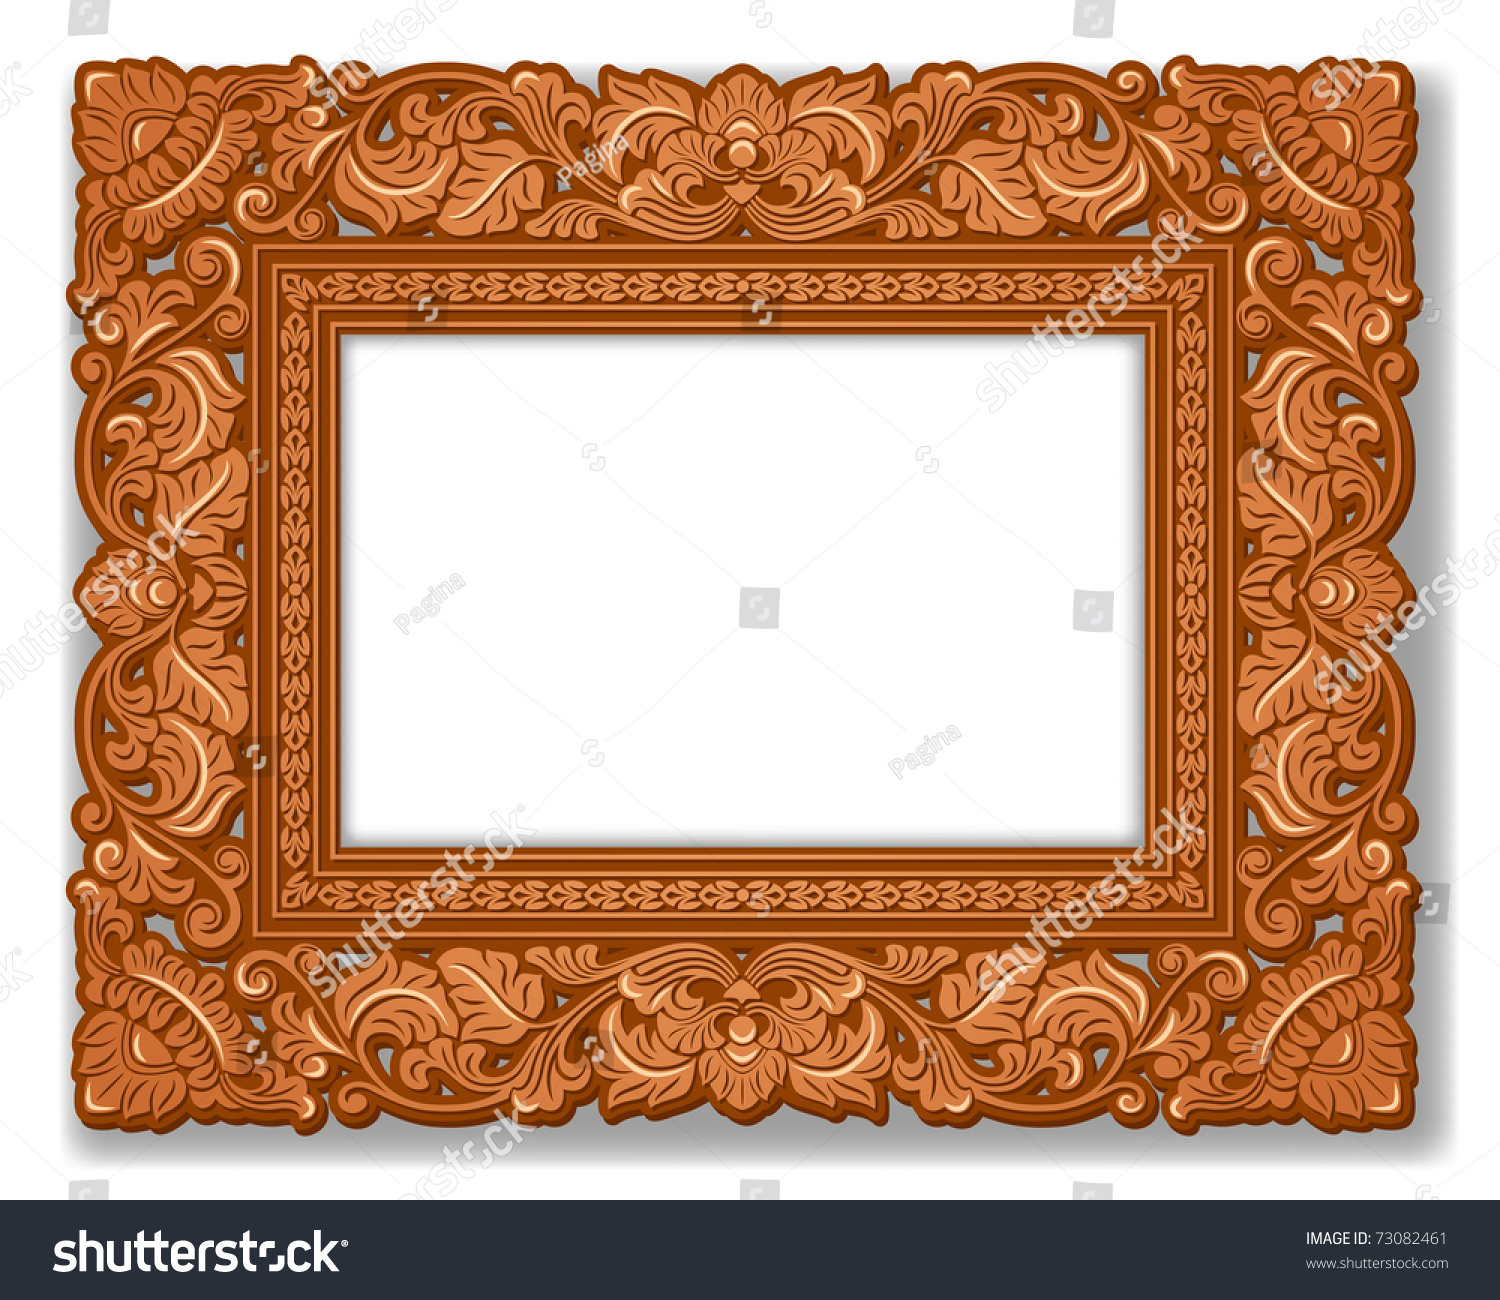 Royal picture frame carved wood stock vector 73082461 shutterstock royal picture frame carved wood jeuxipadfo Image collections